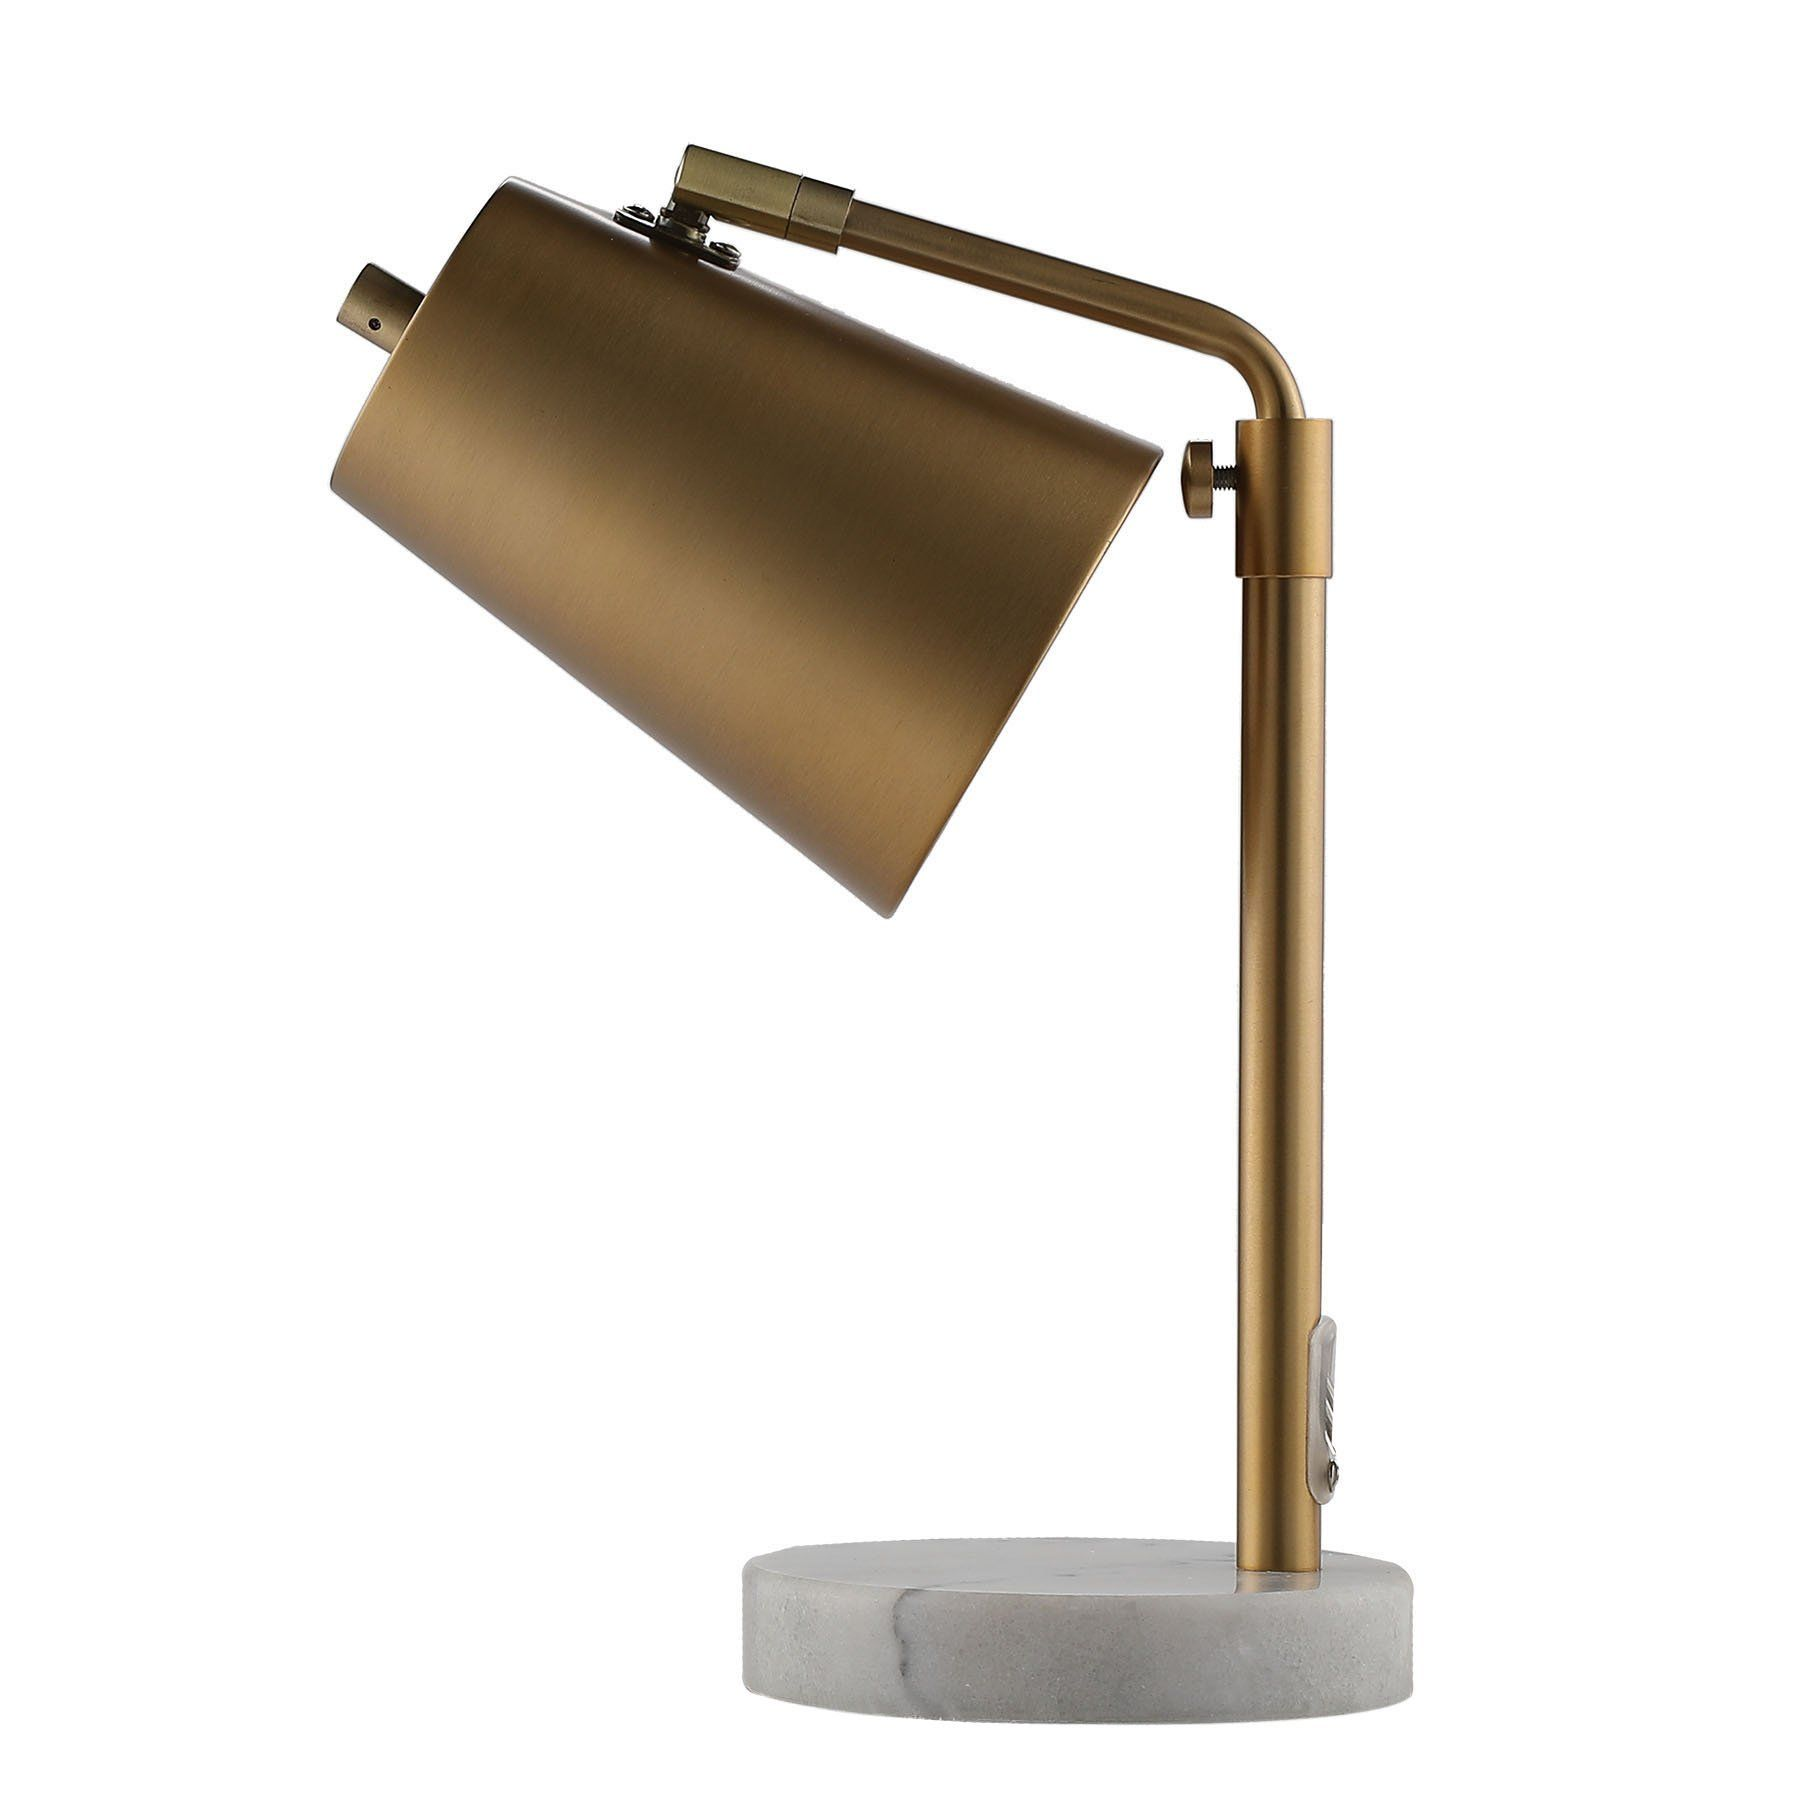 Coz Gold Desk Lamps With Marble Base Elegant Metal Shade Task